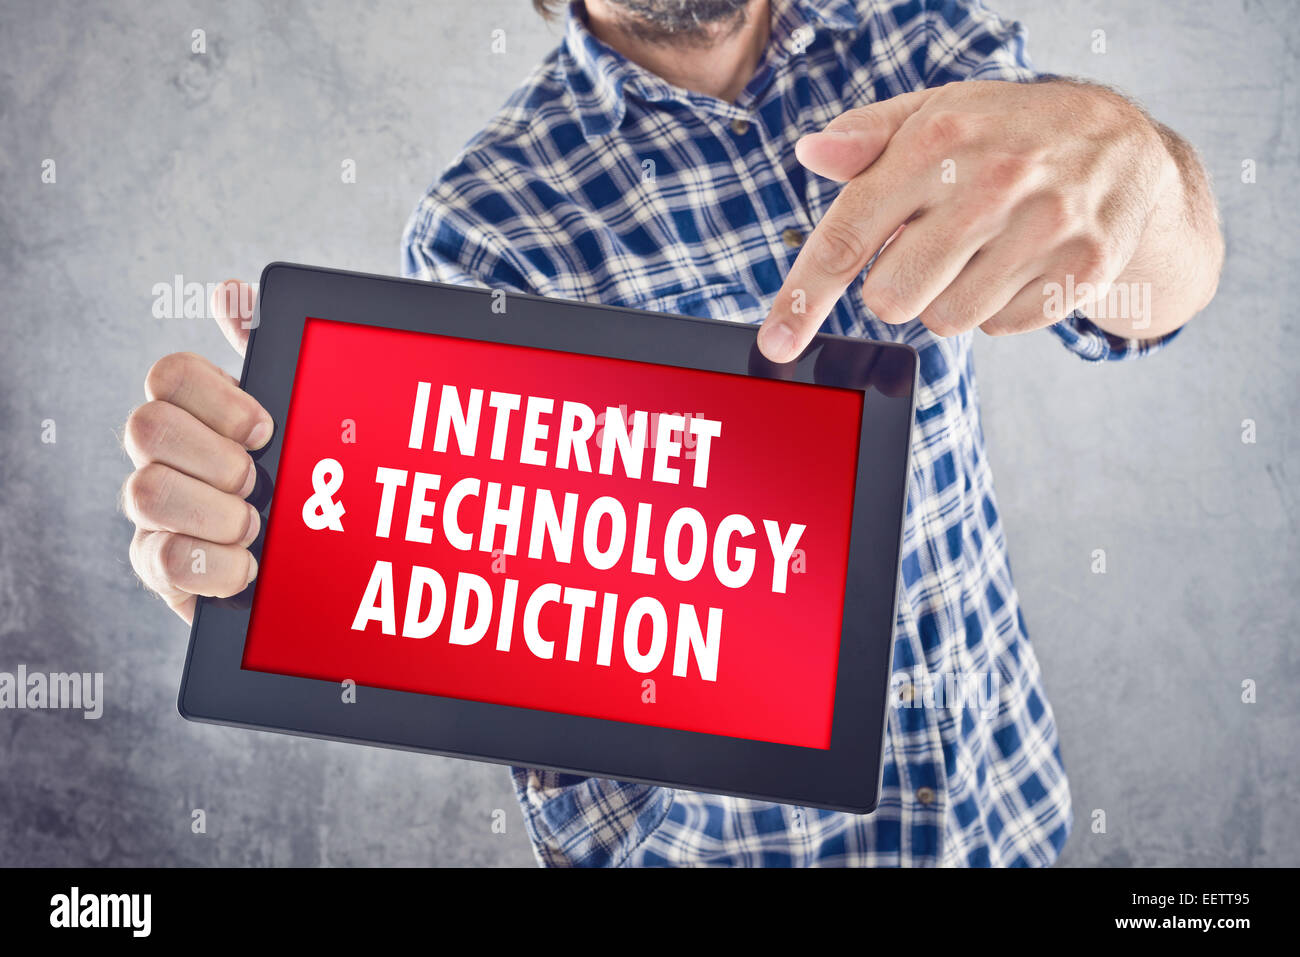 Casual man pointing to 10 inch display of digital tablet with Internet and Technology Addiction displayed on the - Stock Image